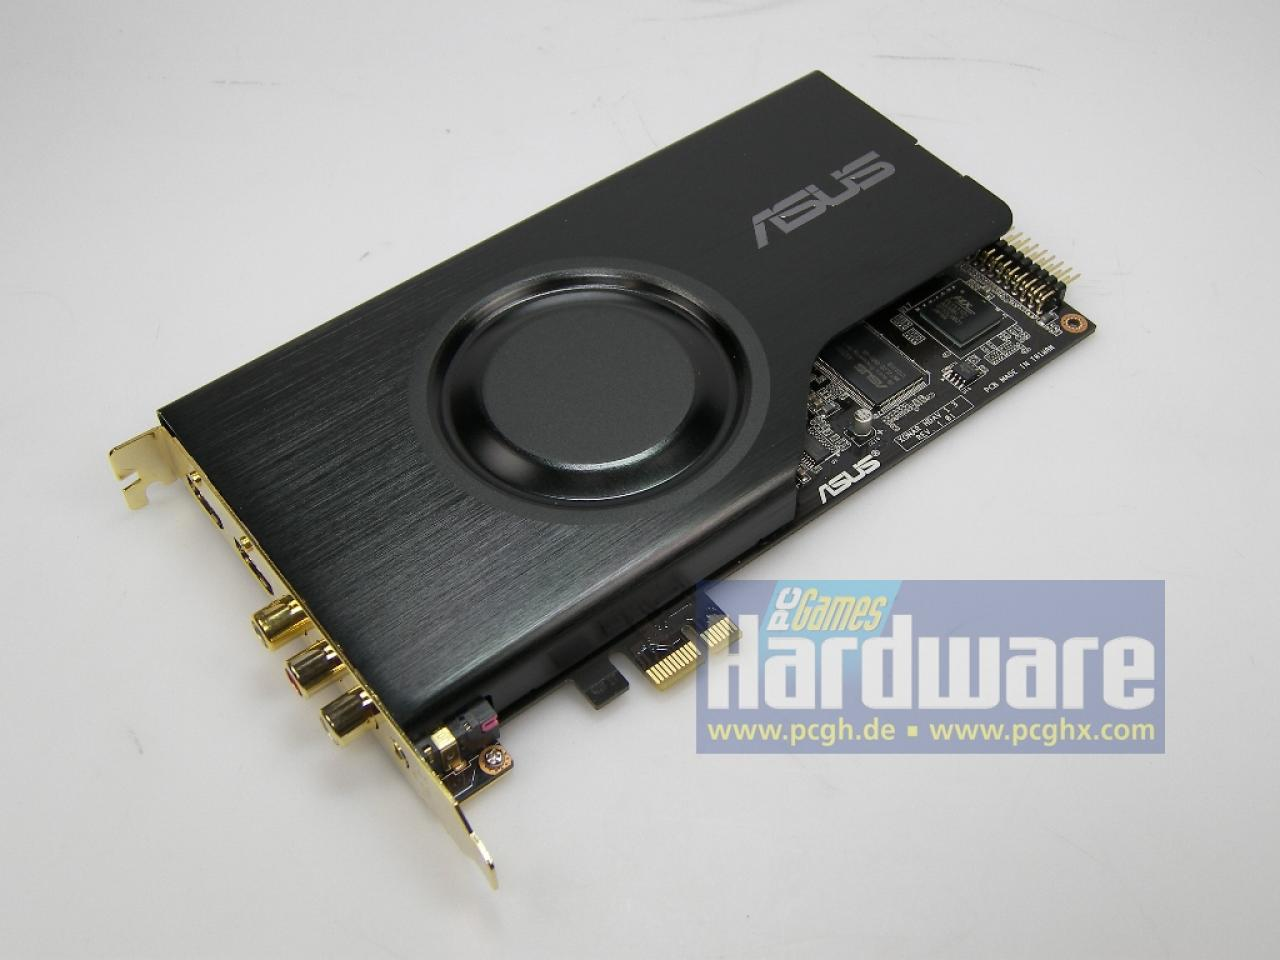 [09/09/08] Today we received a sample of Asus' high-end soundcard Xonar HDAV 1.3 Deluxe. The Splendid HD processor improves the video output of the graphics card with enhanced sharpness, contrast and colorfulness. The PCI-Express device supports 8-channel audio output for HD audio material.